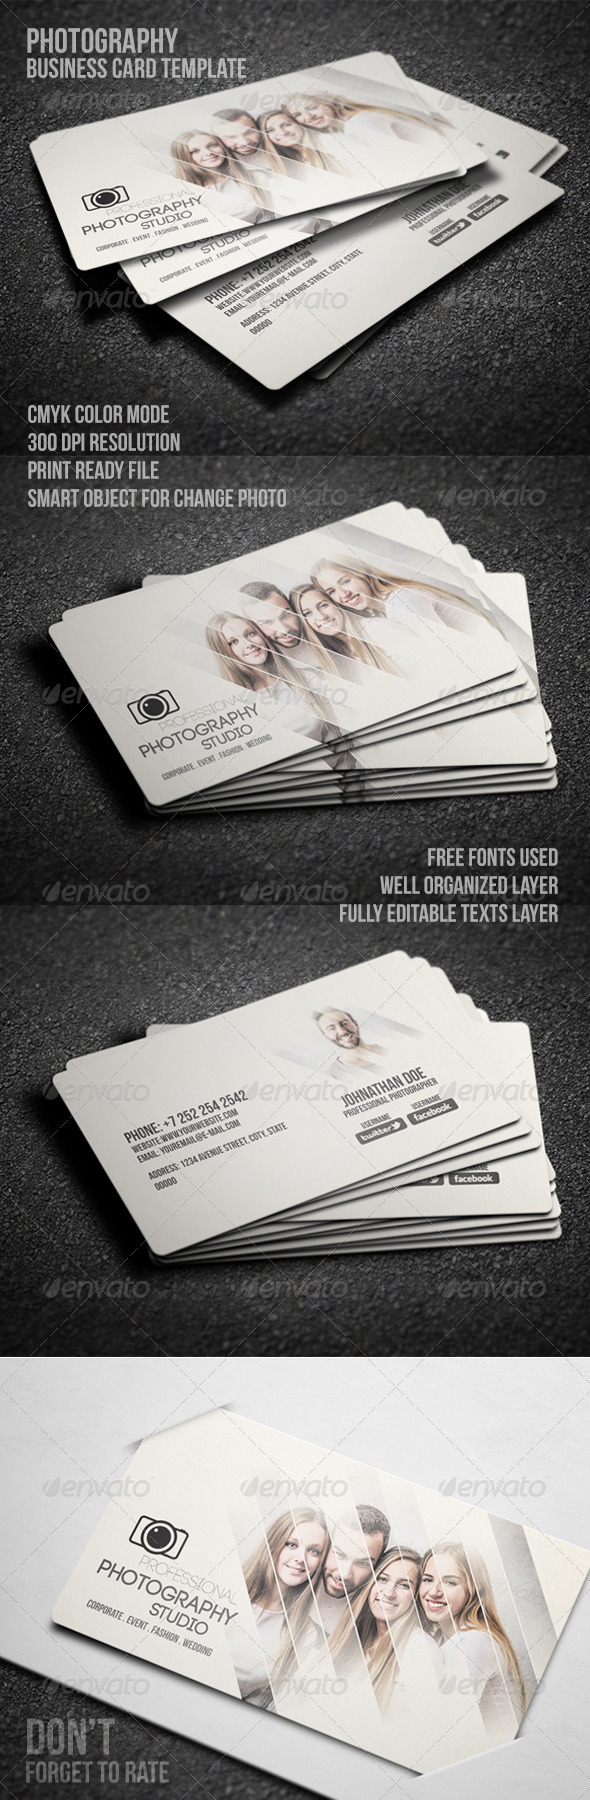 GraphicRiver Photography Business Card 8204860